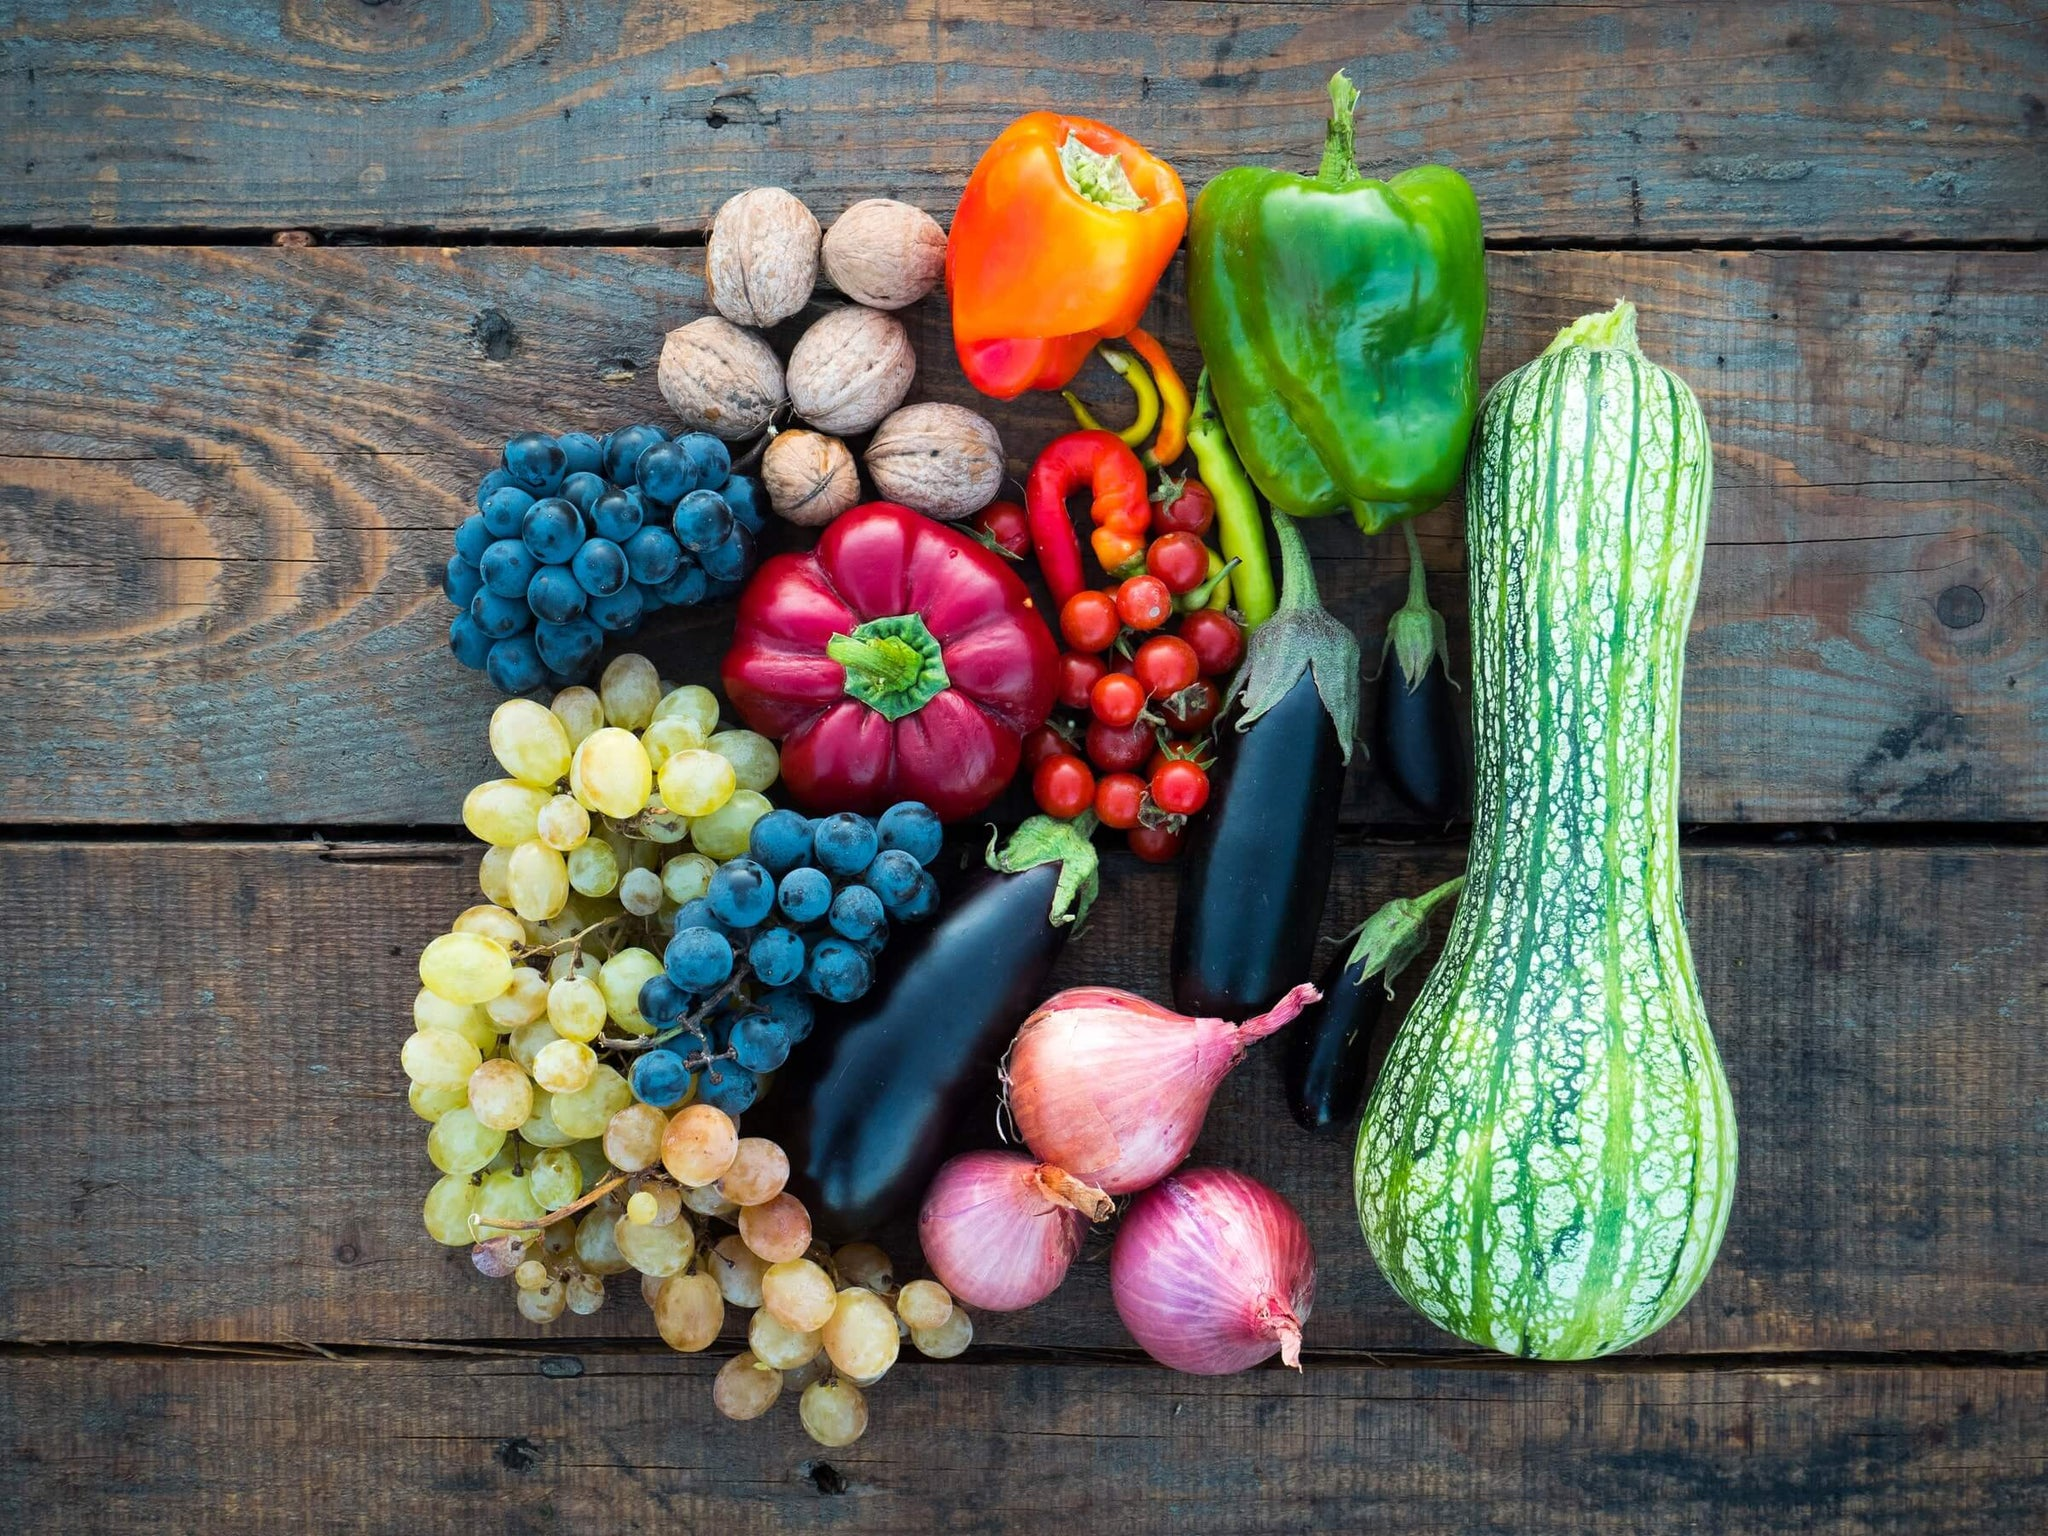 Antioxidant rich fruits and vegetables, sources of vitamins C and A found in SLMD Skincare Retinol Serum